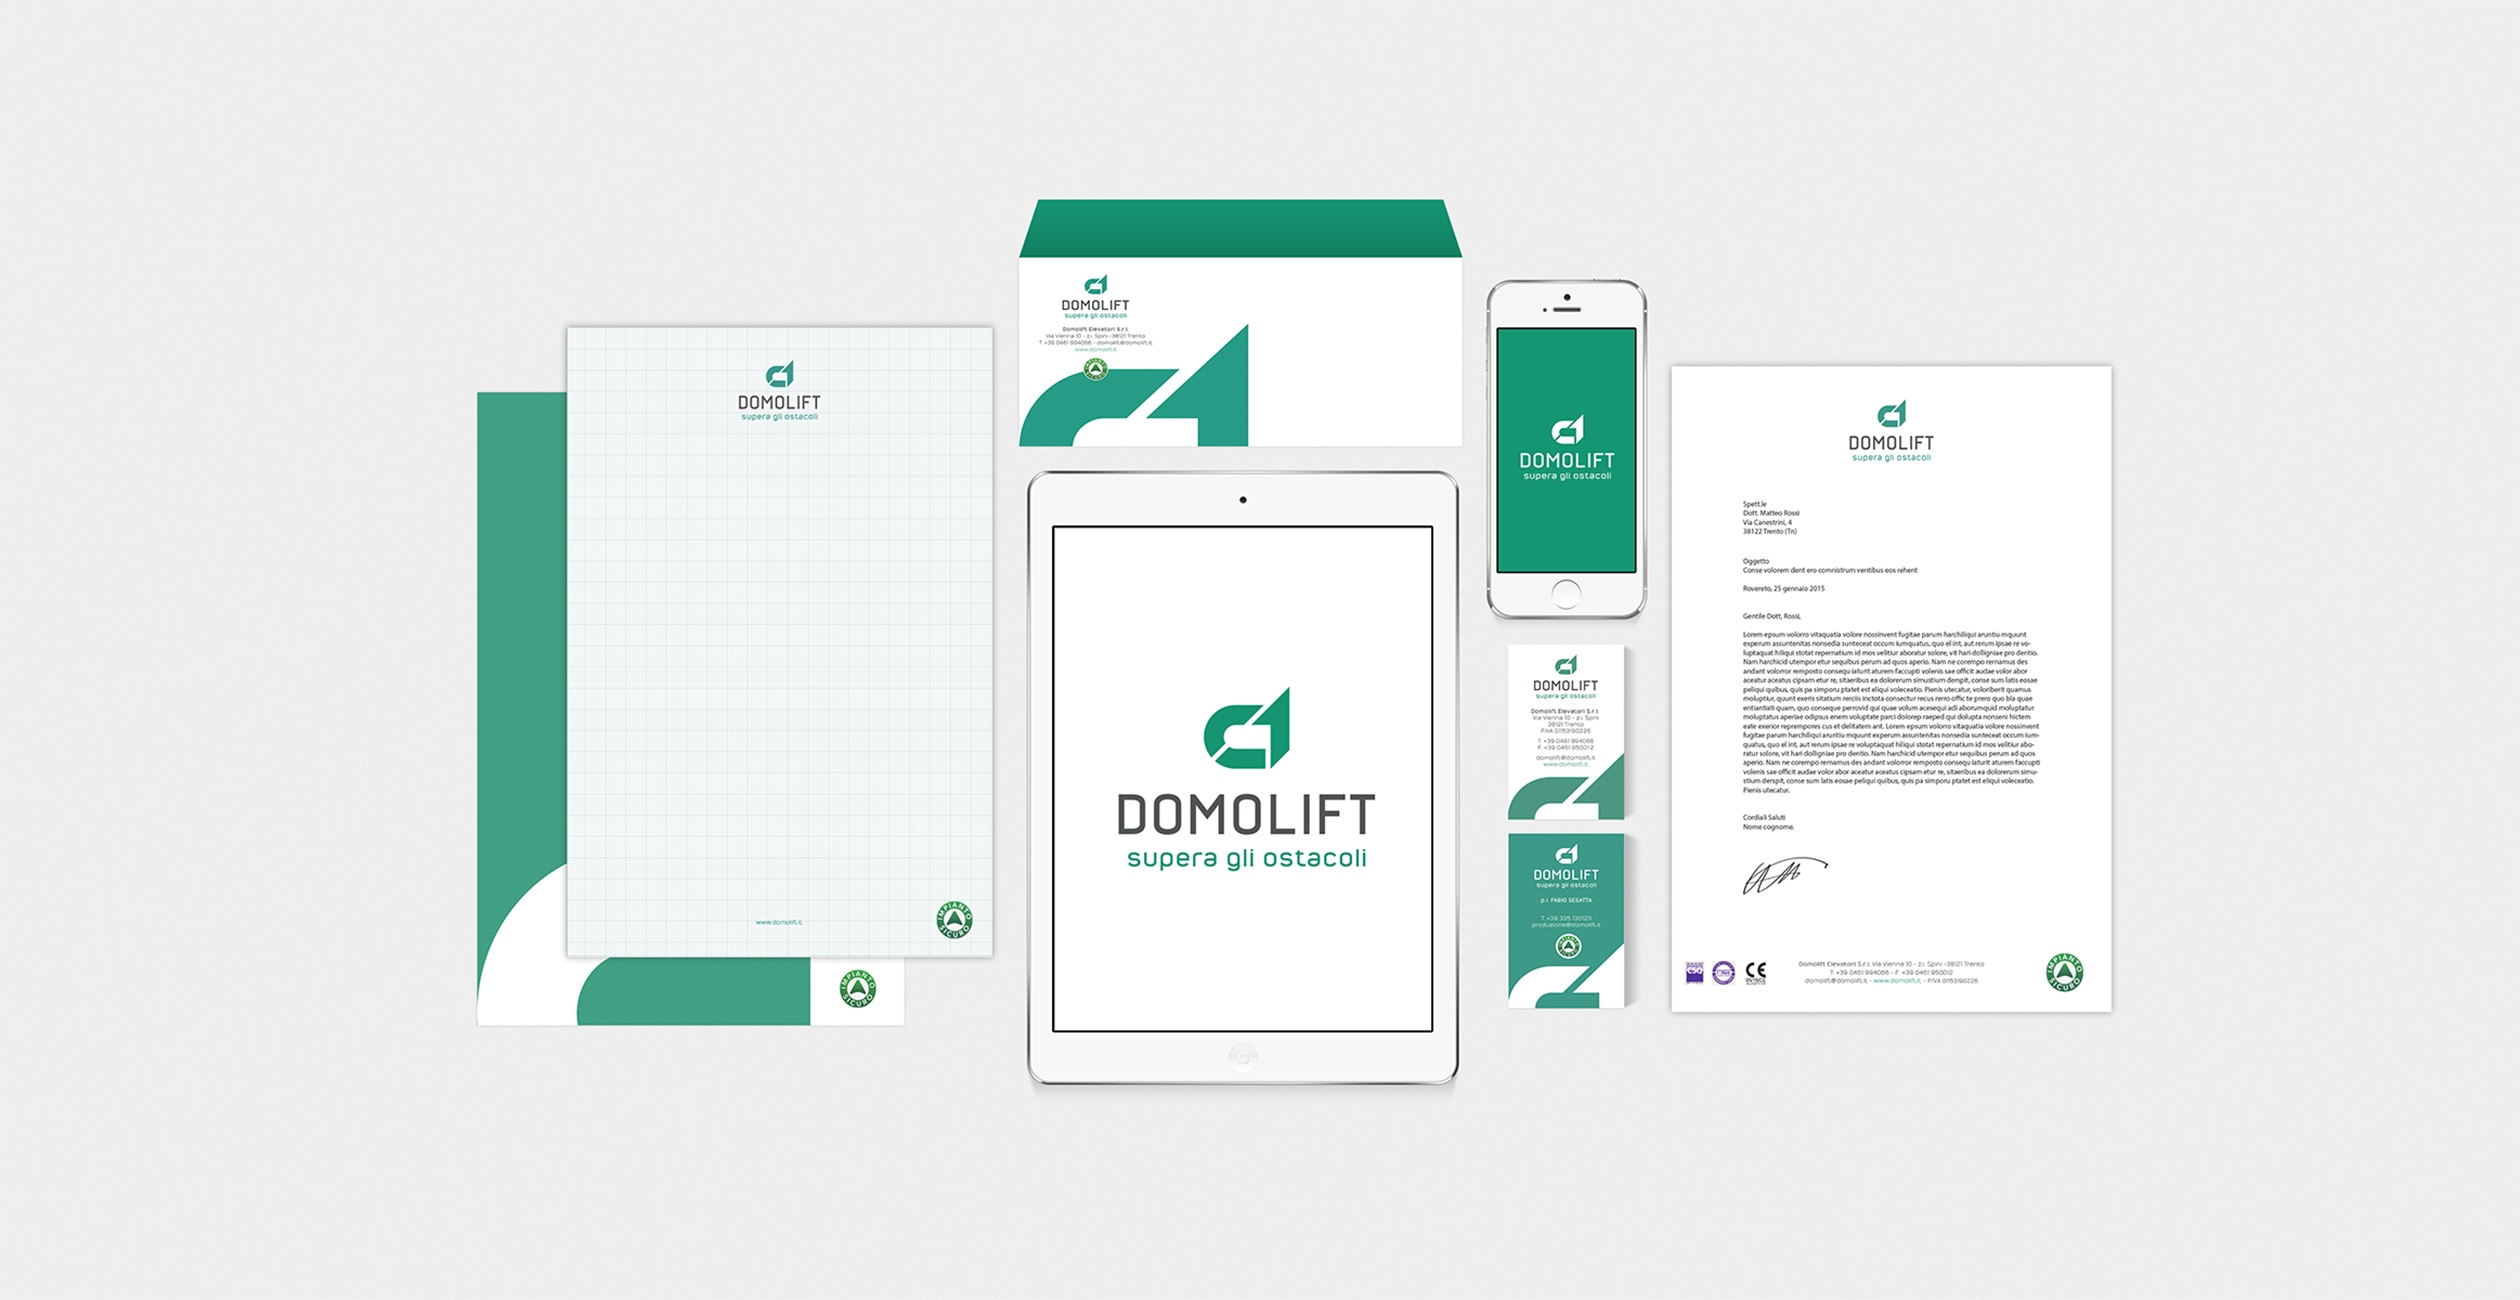 02_corporate_domolift_plus_communications_trento